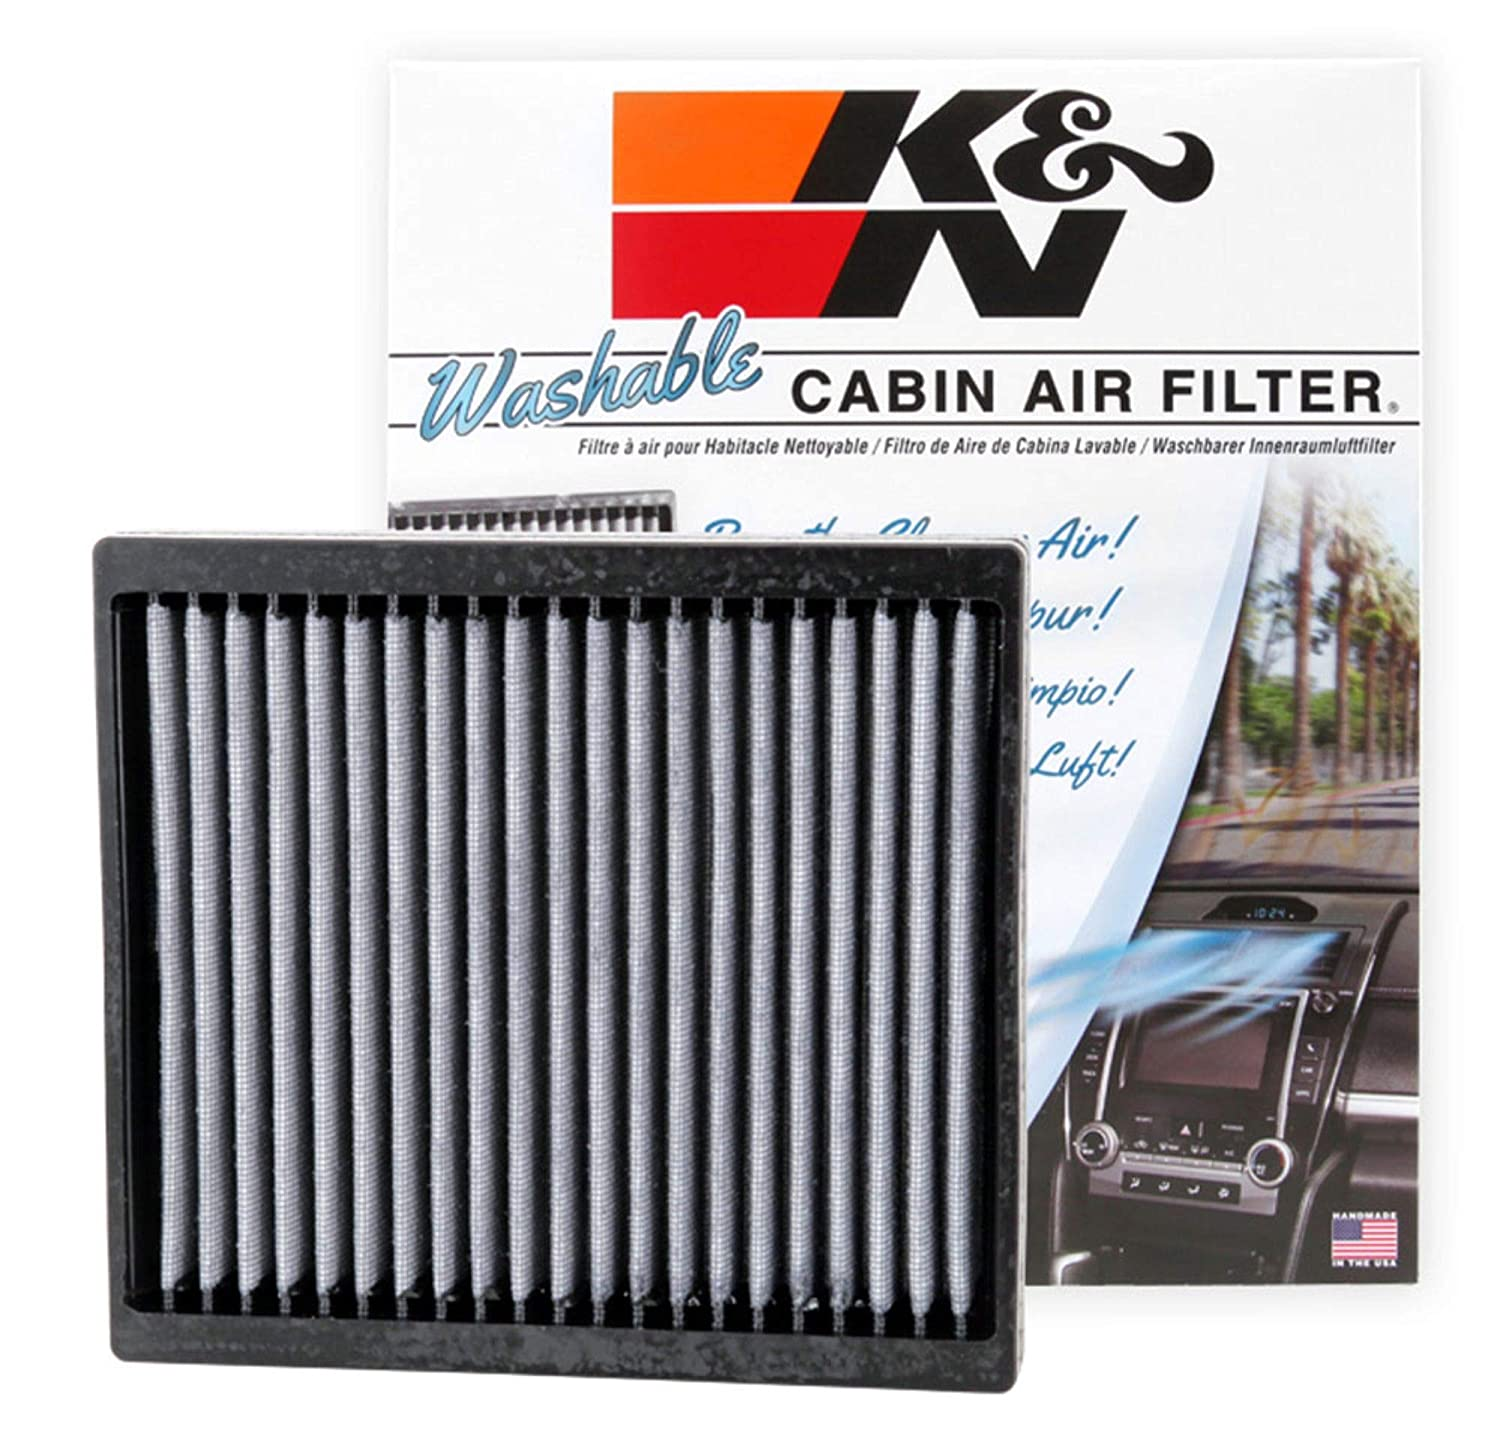 Amazon.com: K&N VF2004 Washable & Reusable Cabin Air Filter ...